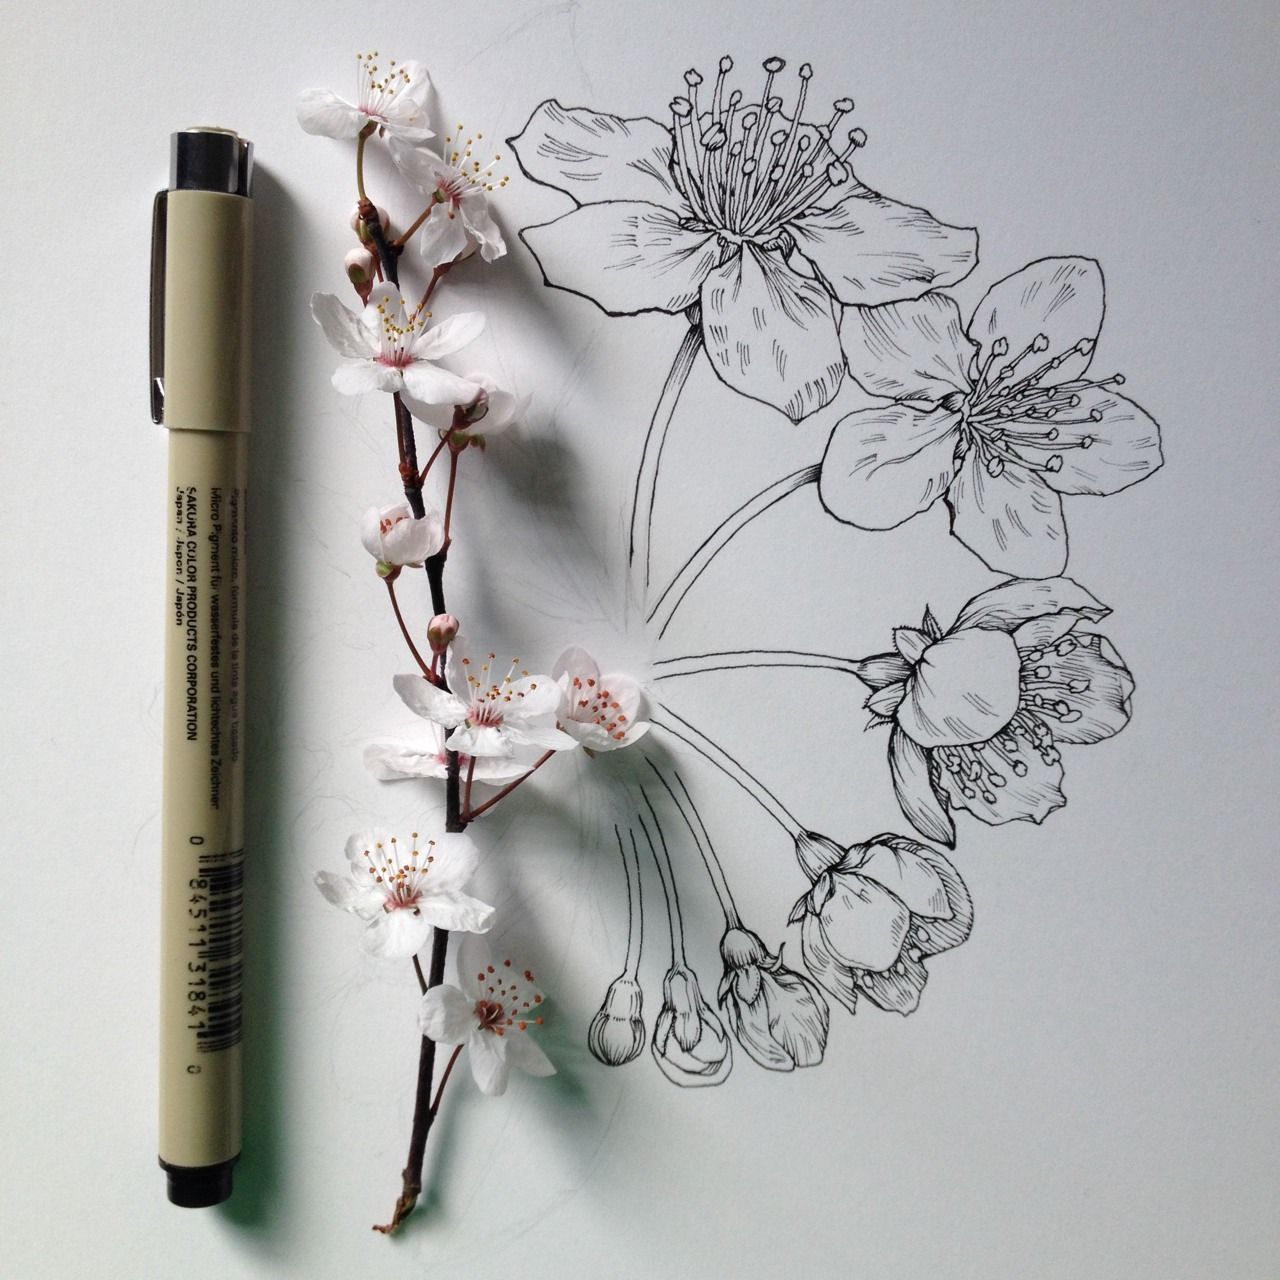 Blooming Flowers Gotsomelovelytattoostumblr